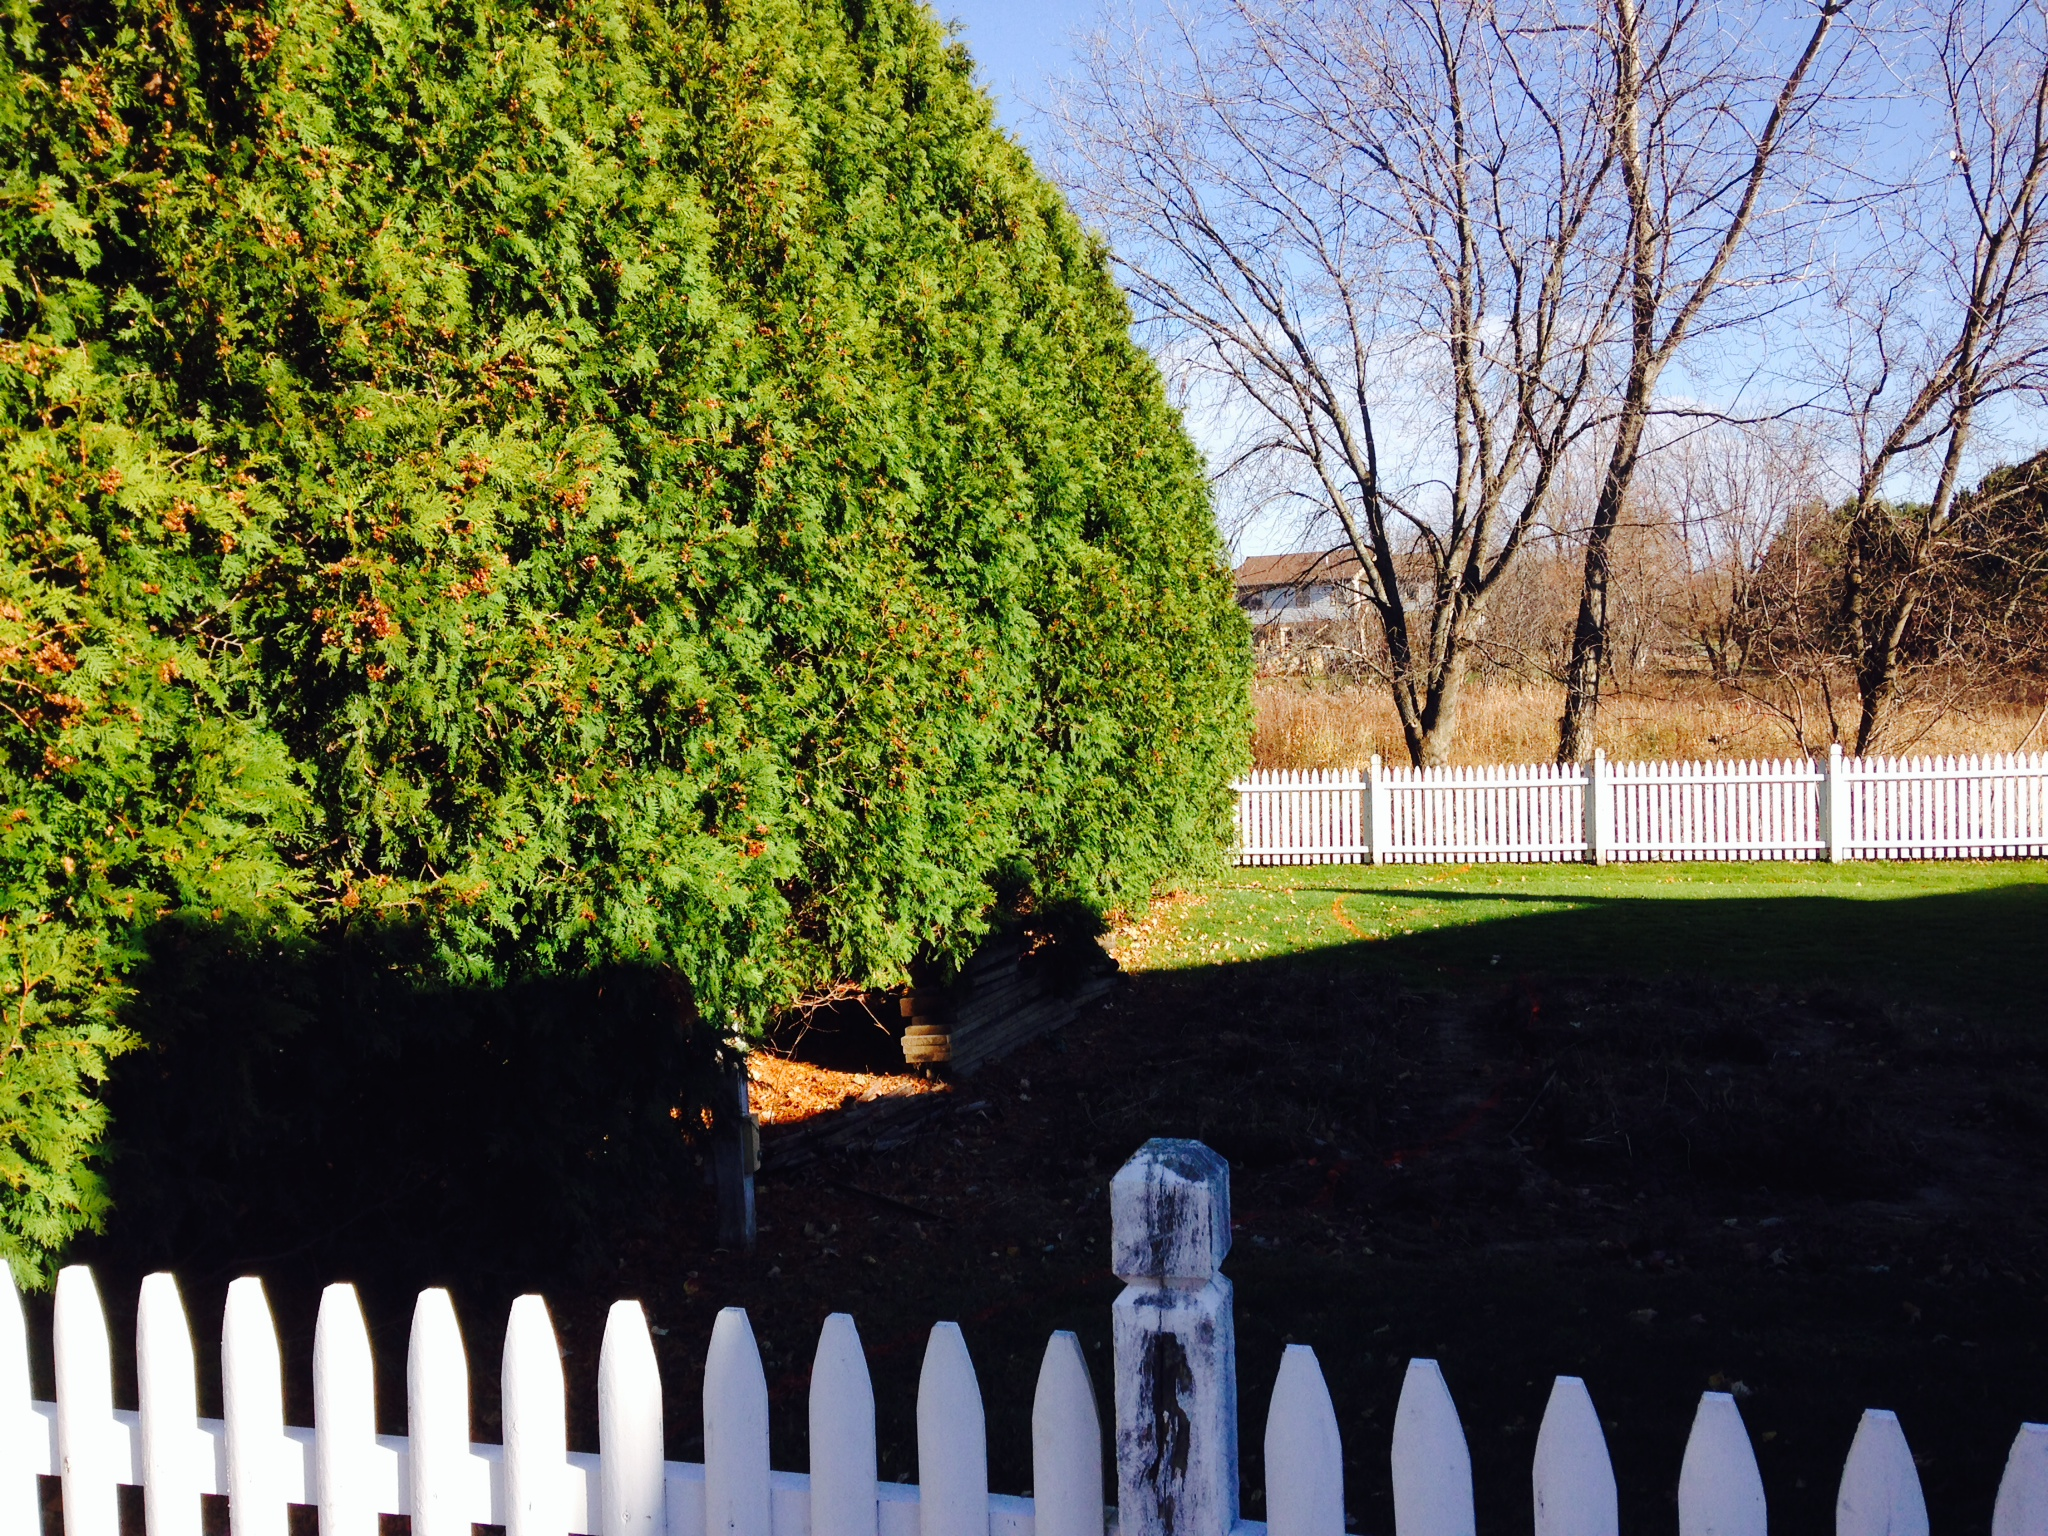 This overgrown hedge in Williston was beyond rejuvenative pruning and was rotting the client's fence